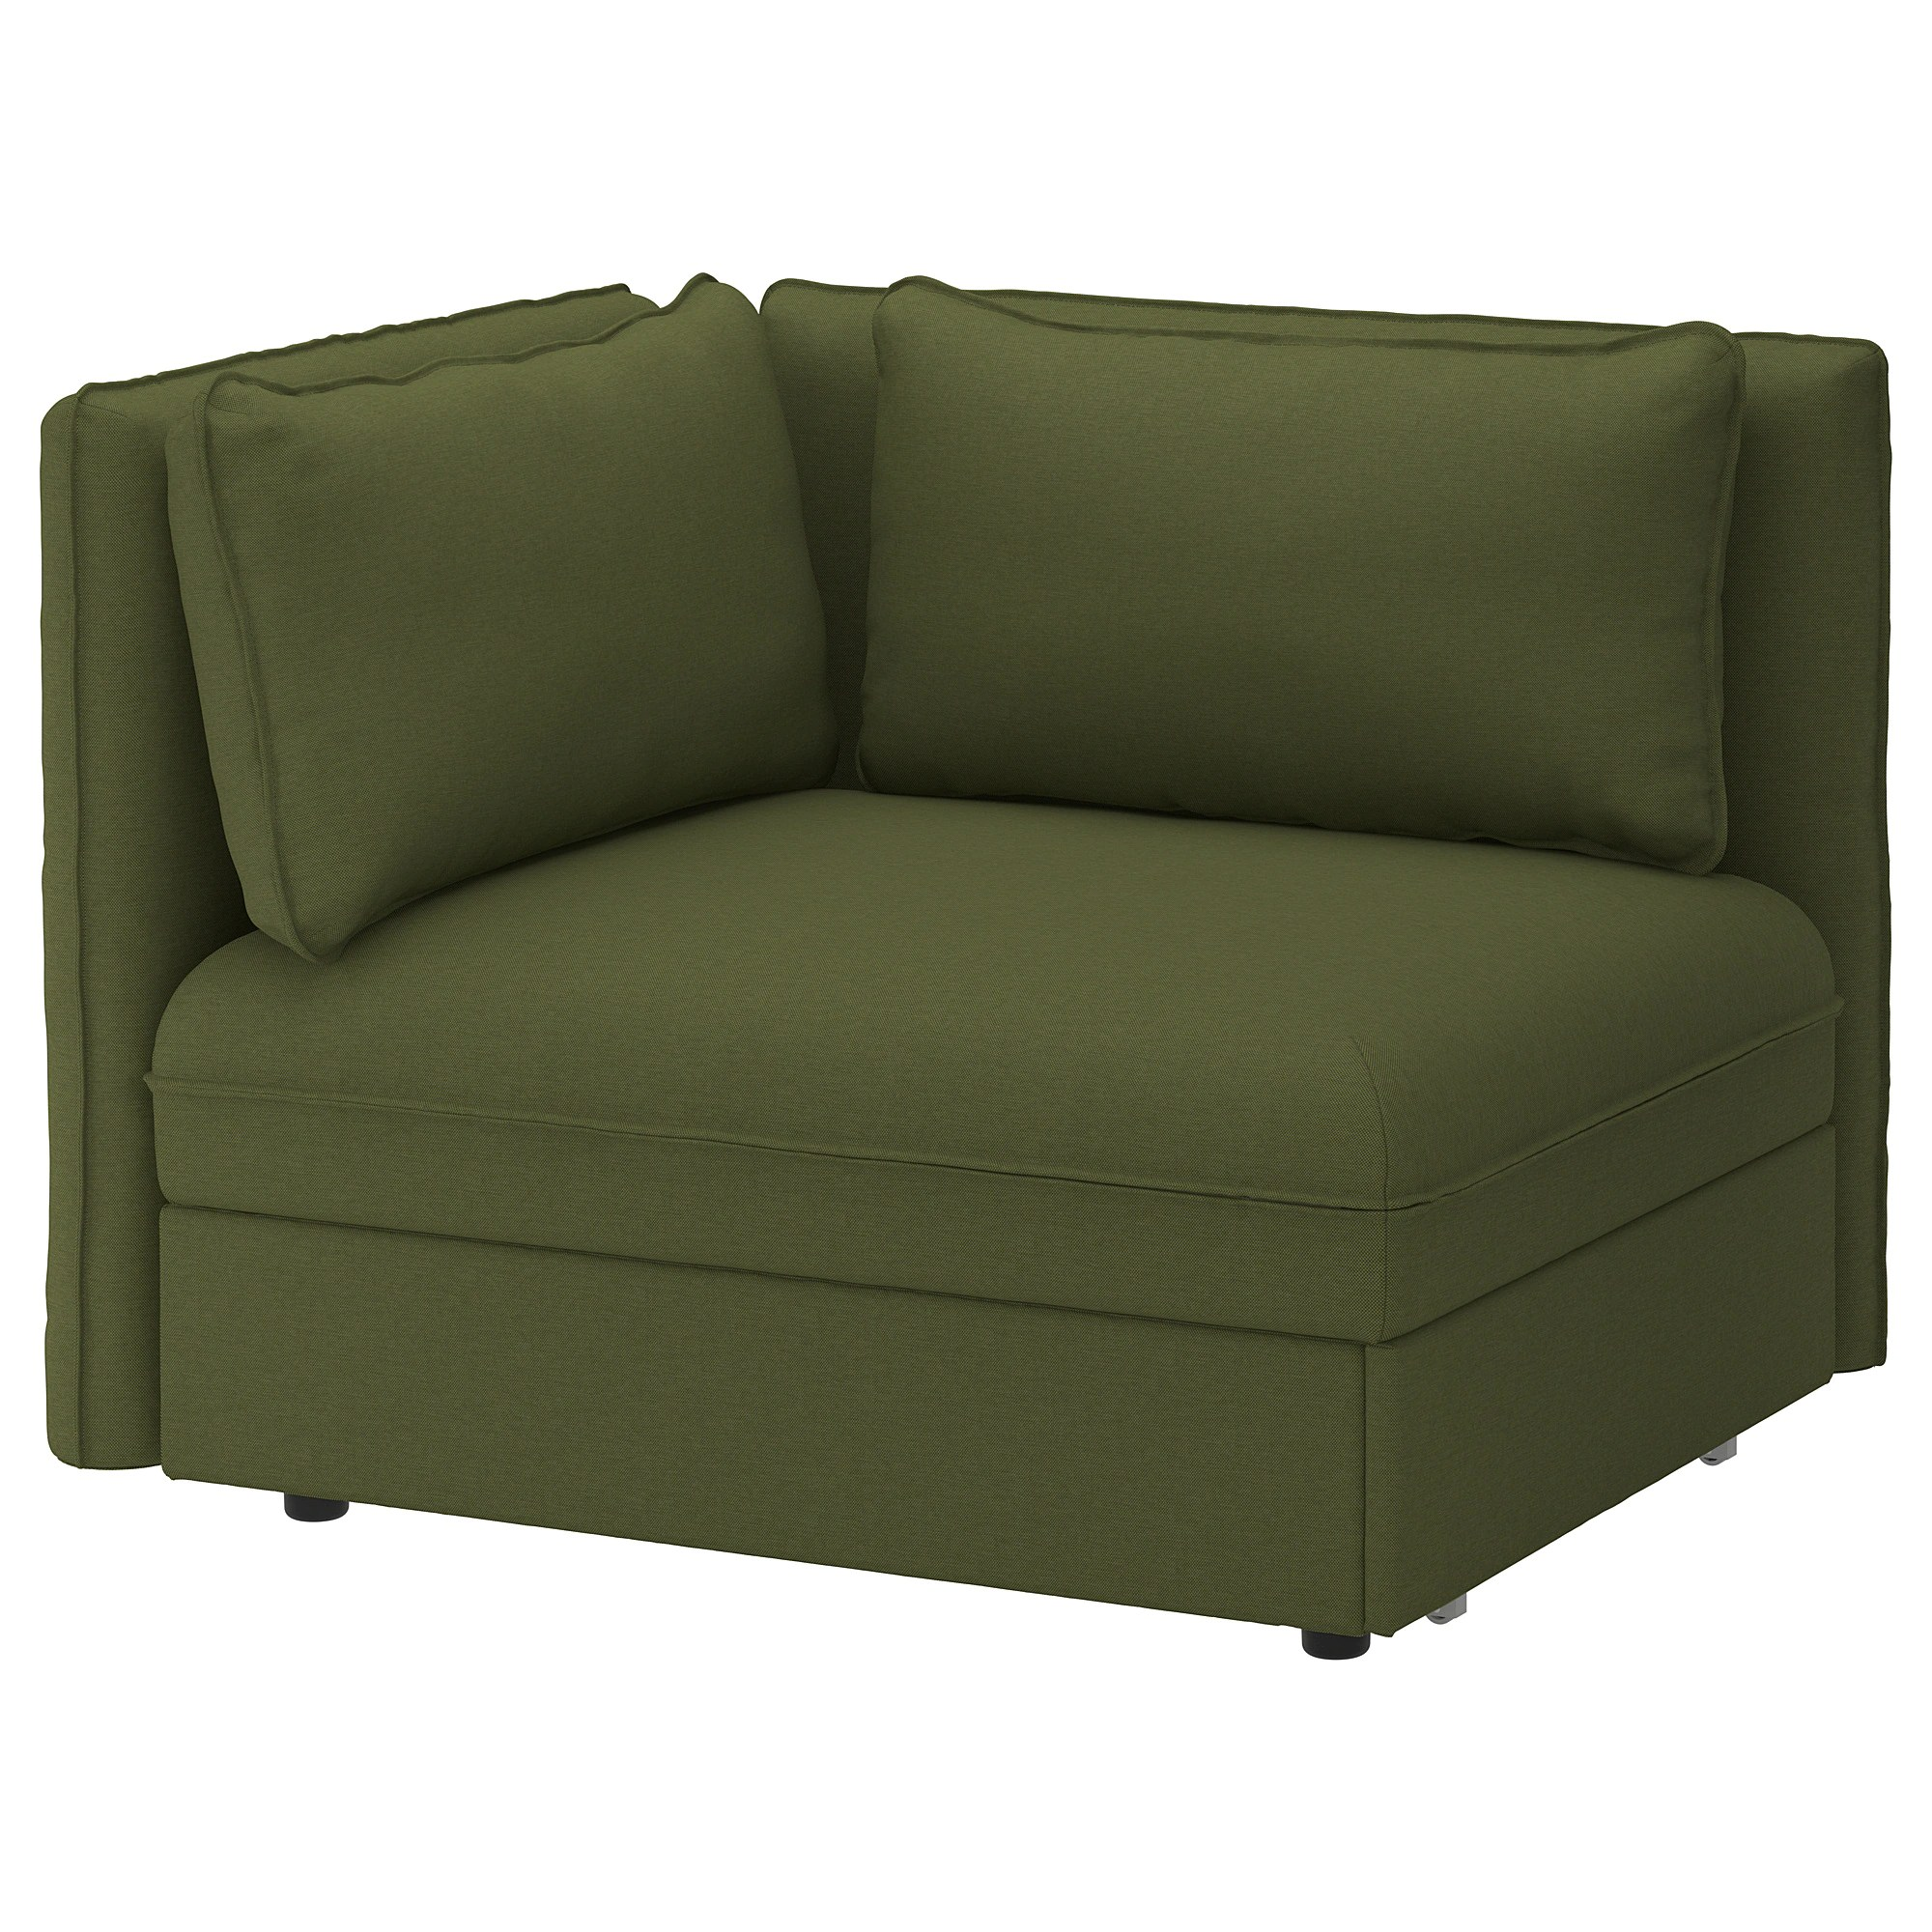 Sofa Module Sofa Bed Module With Backrests Vallentuna Orrsta Olive Green